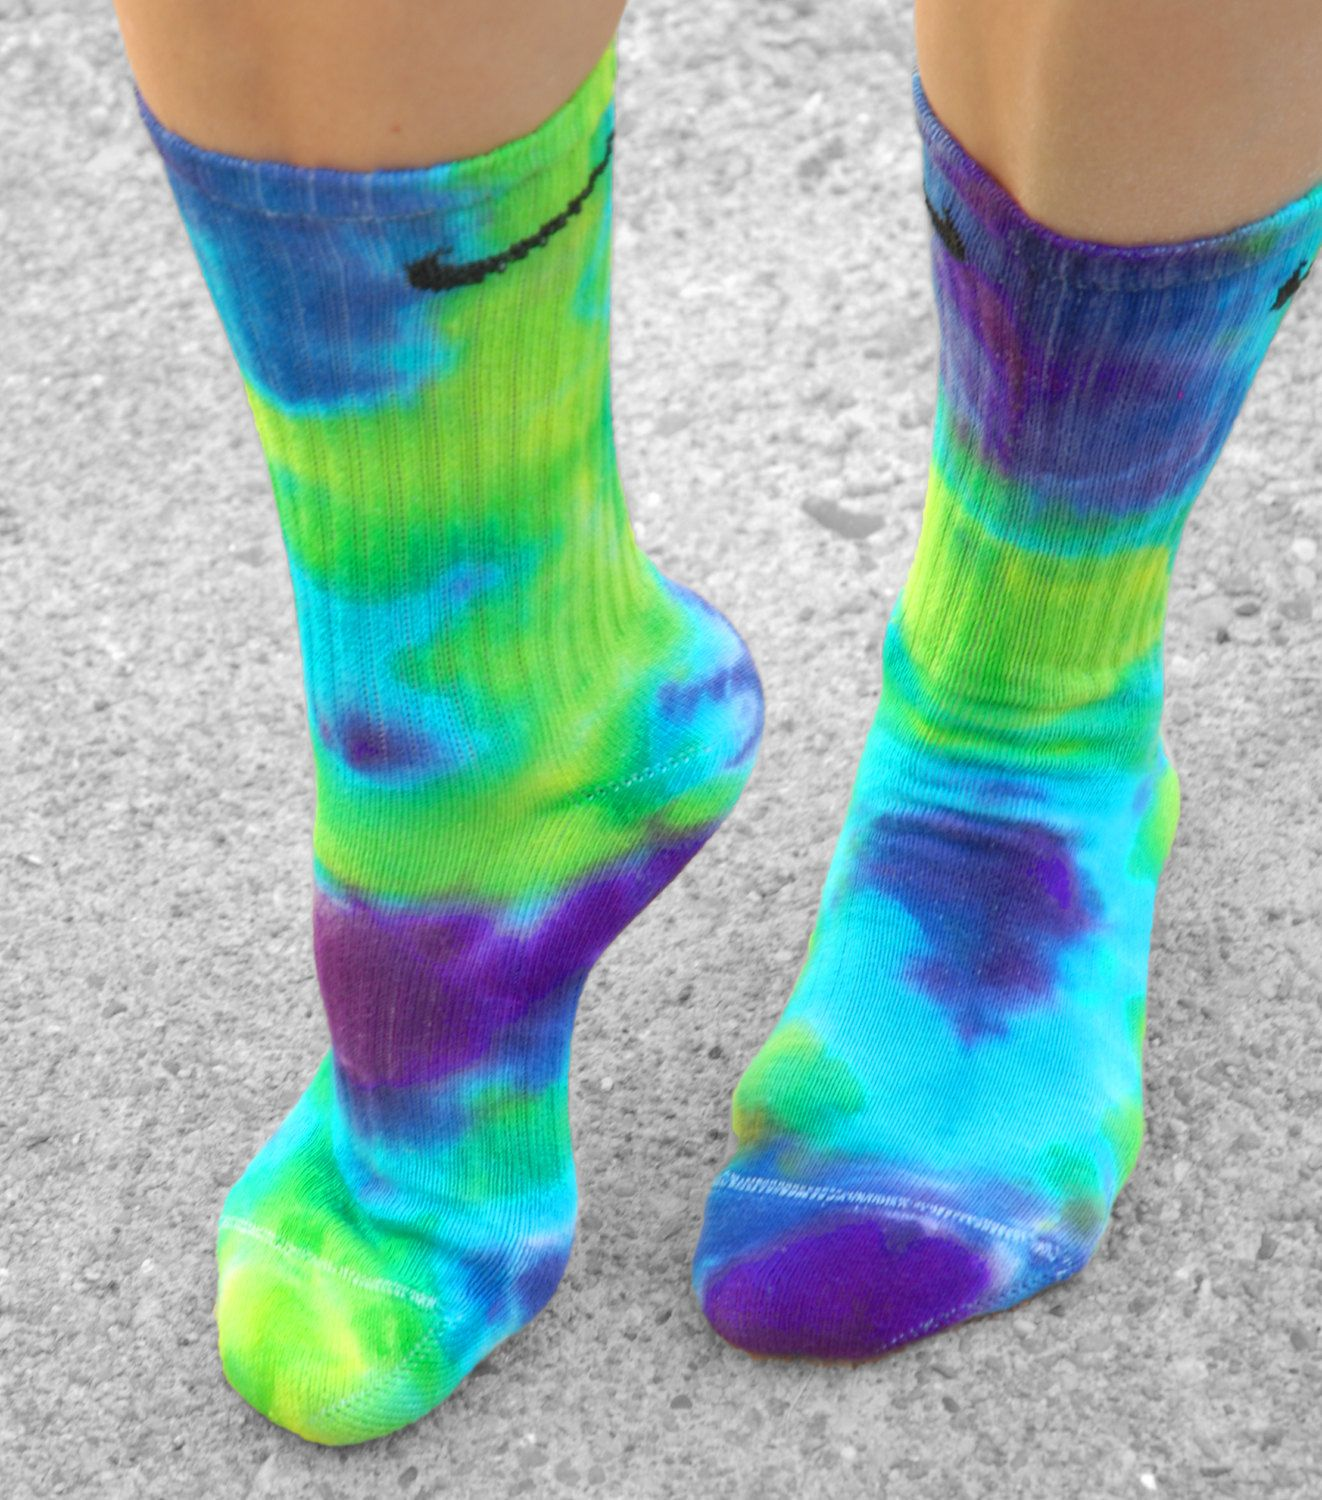 purple haze tie dye nike socks custom tie dye socks. Black Bedroom Furniture Sets. Home Design Ideas